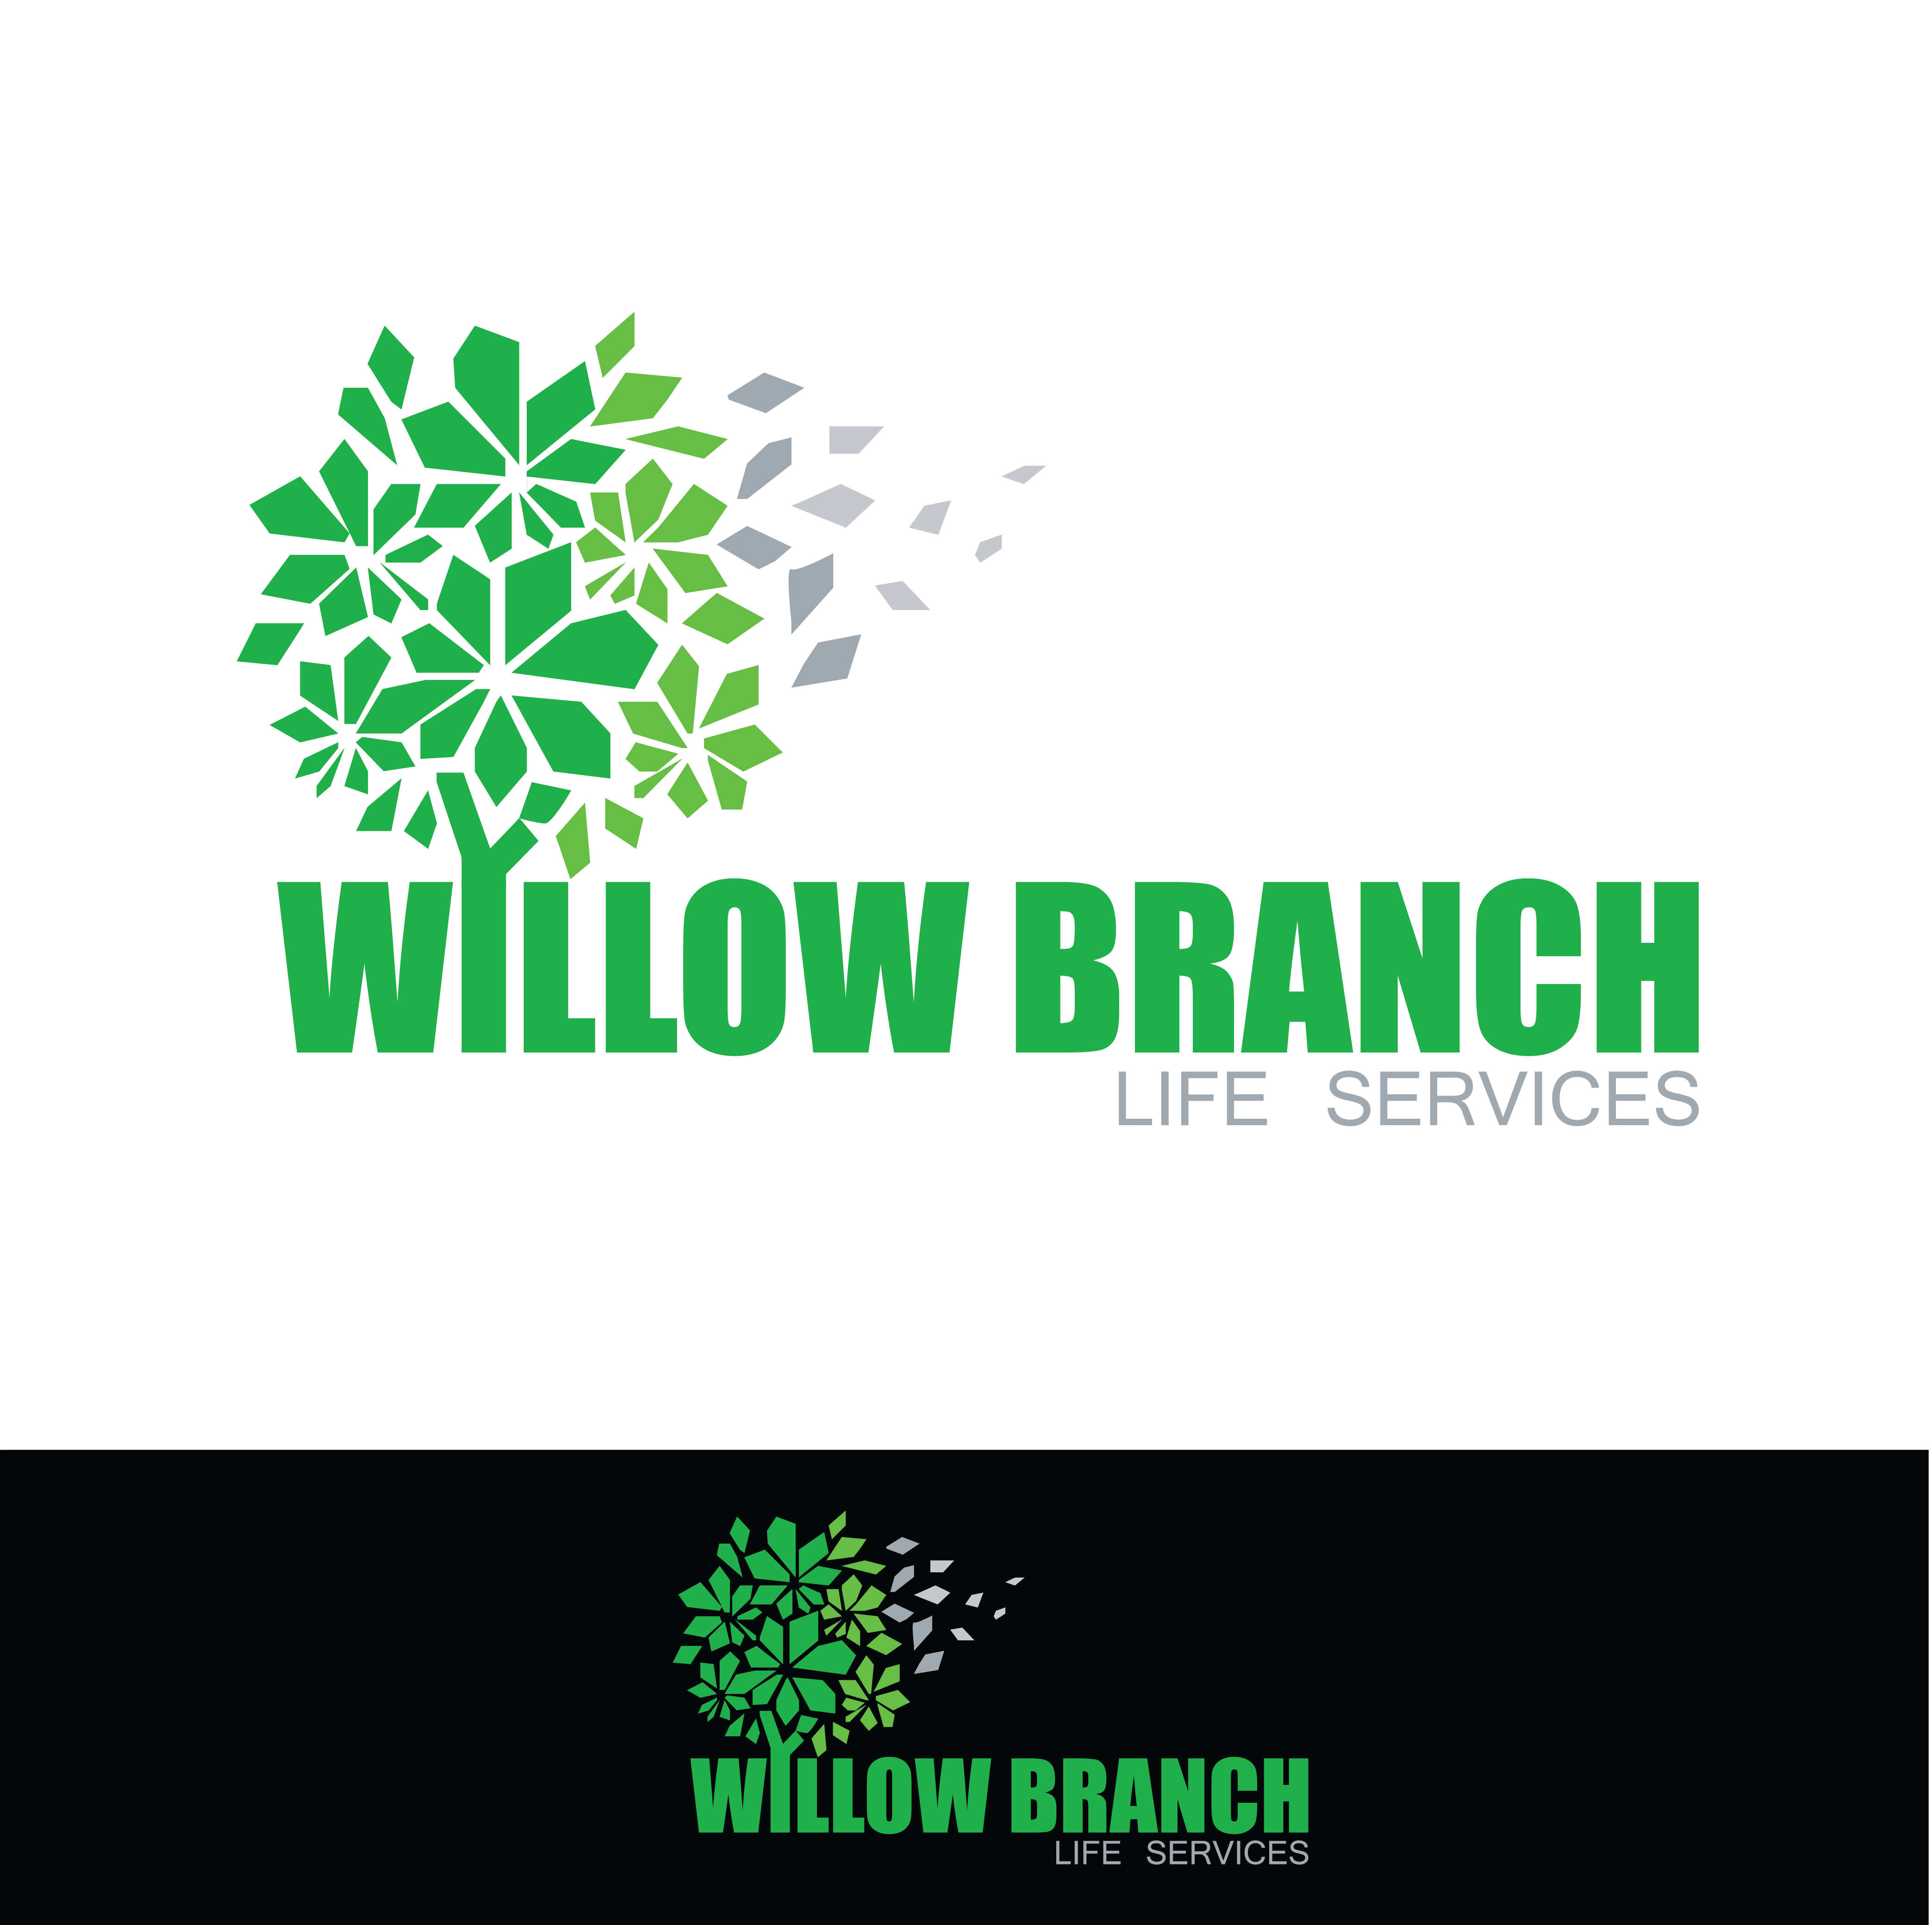 Logo Design by pojas12 - Entry No. 424 in the Logo Design Contest Artistic Logo Design for Willow Branch Life Service.